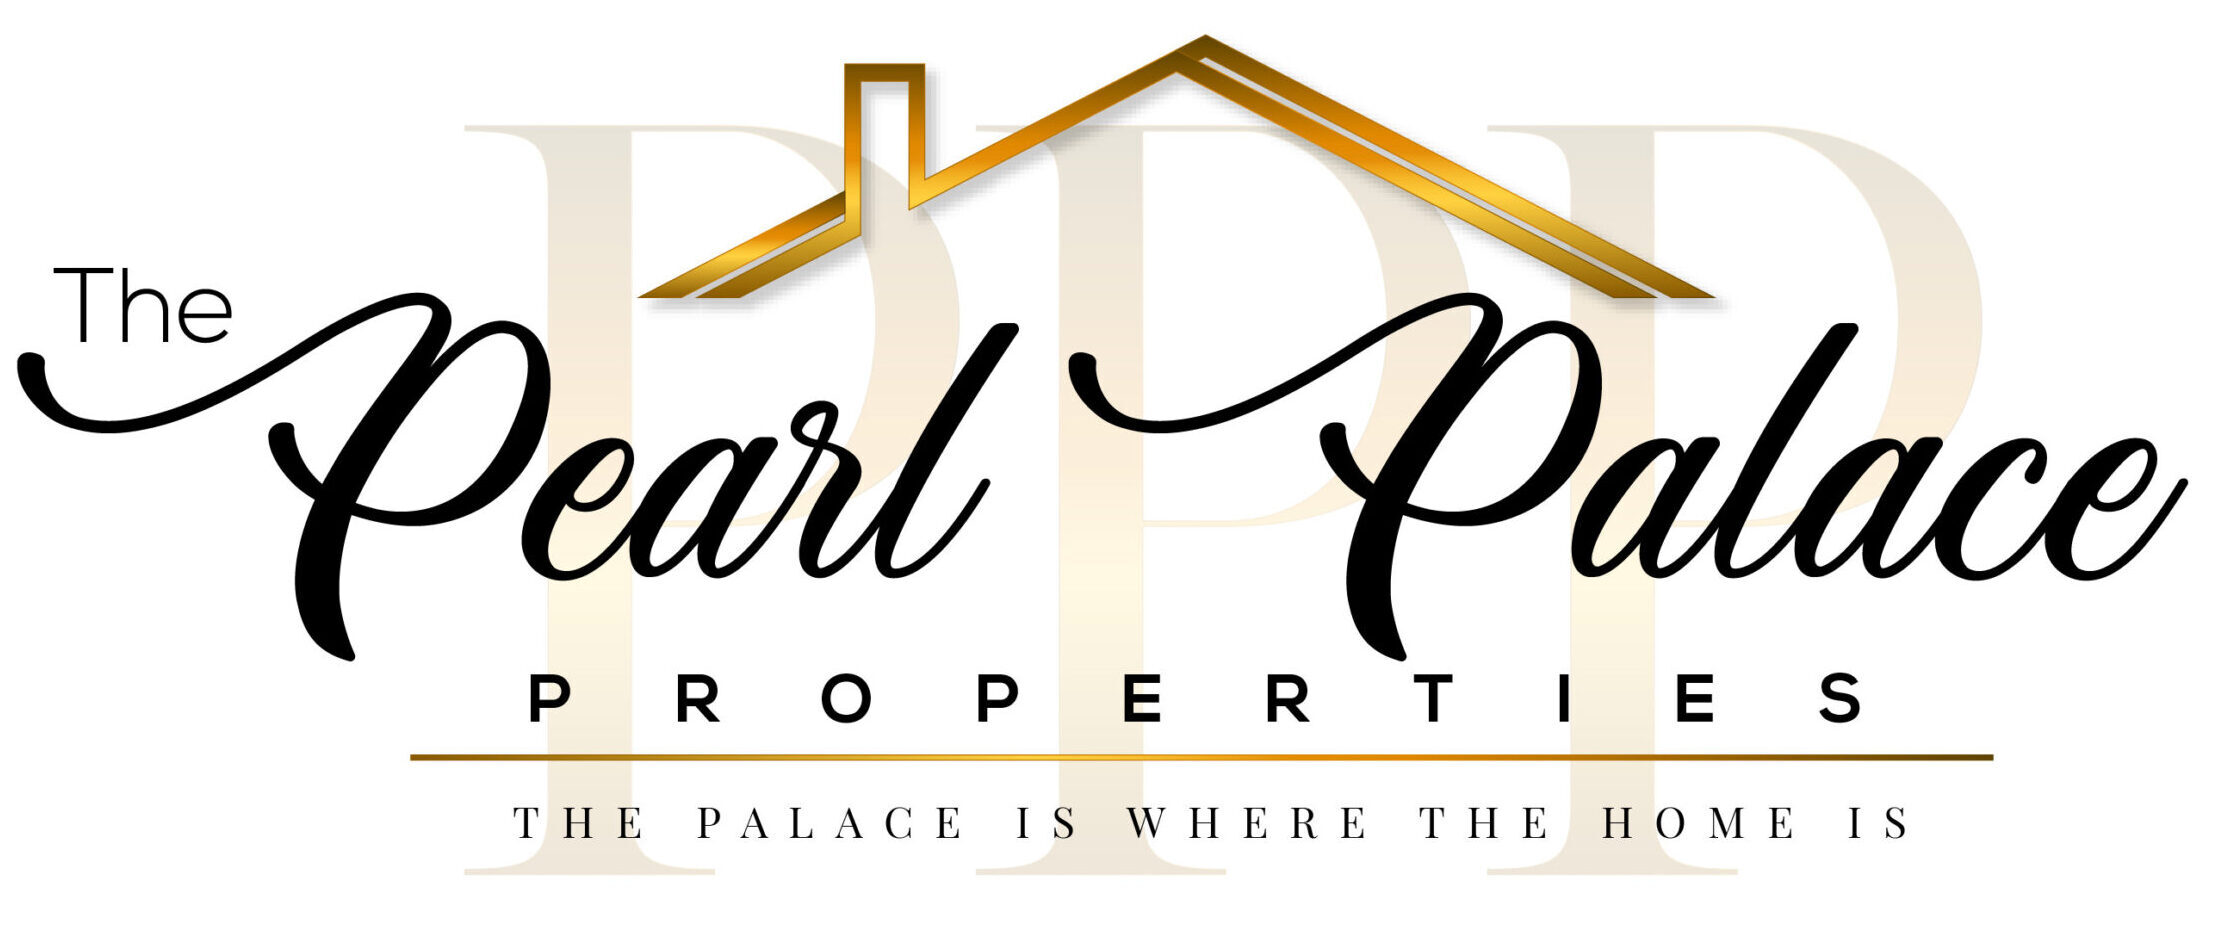 The Pearl Palace Properties